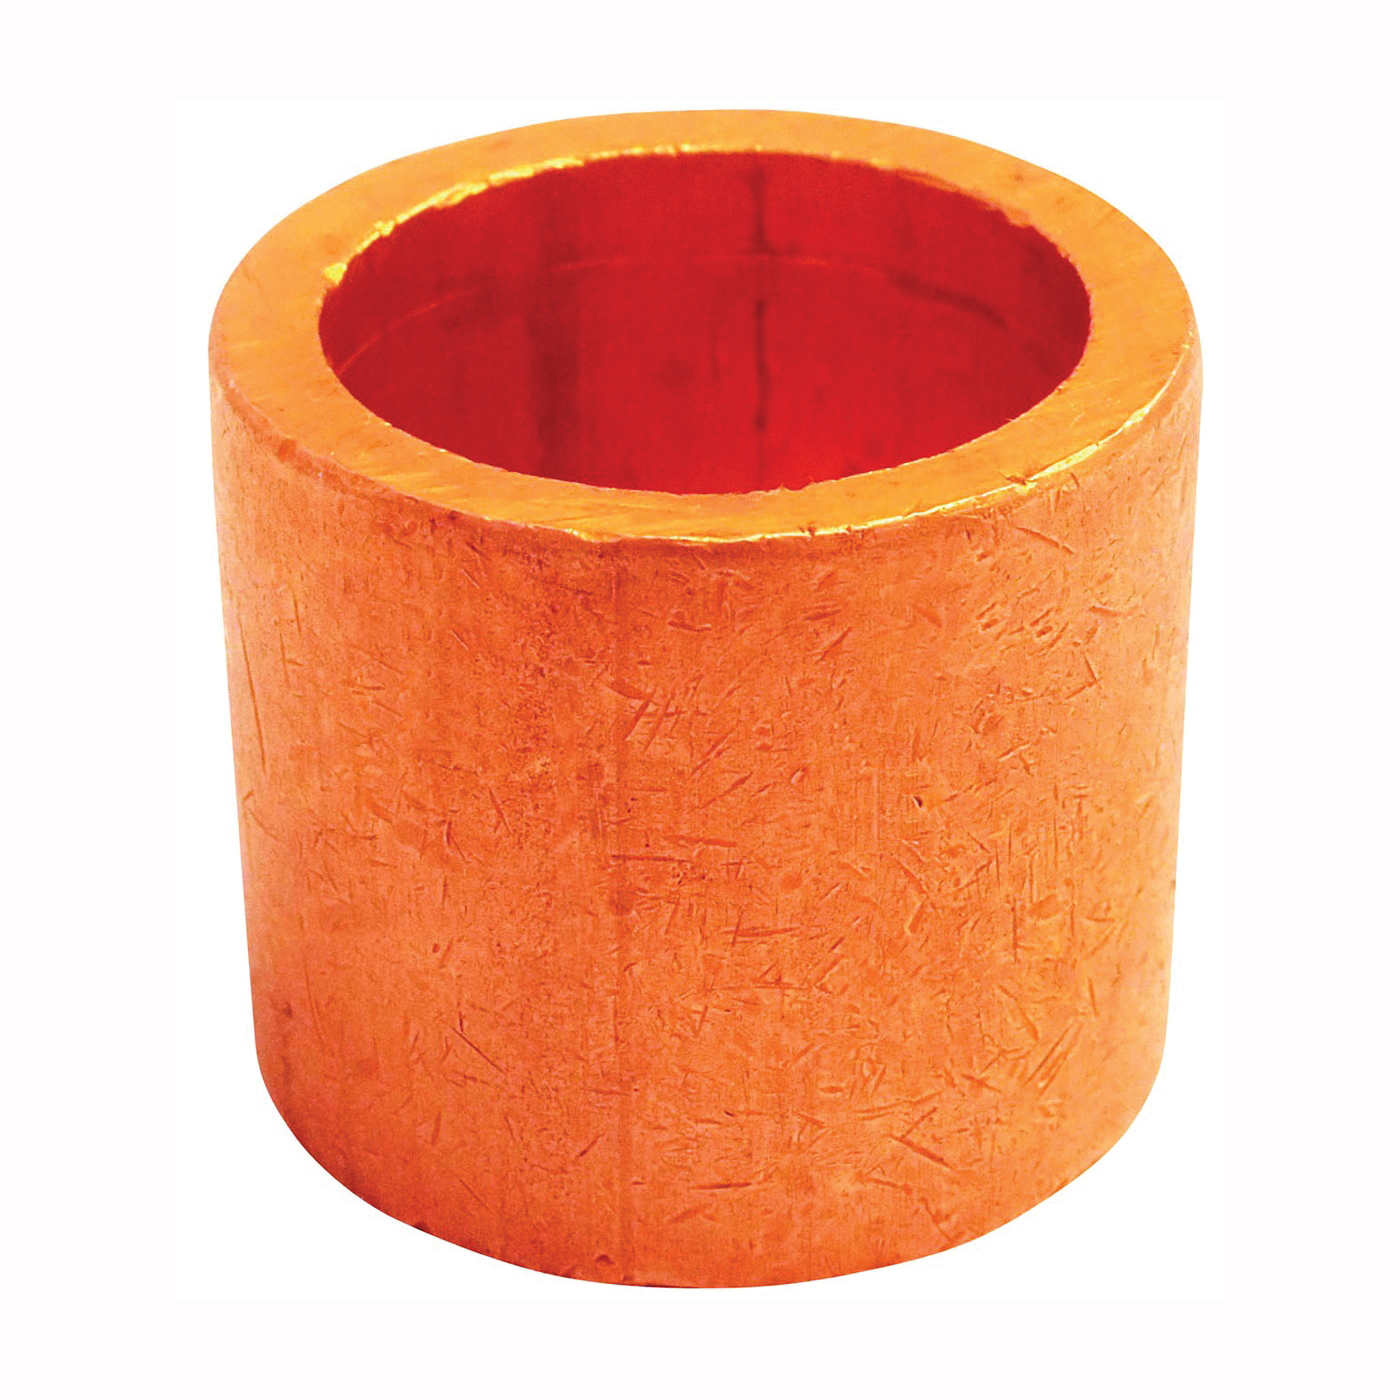 Picture of EPC 119 Series 10030556 Flush Bushing, 1 x 3/4 in, FTG x Sweat